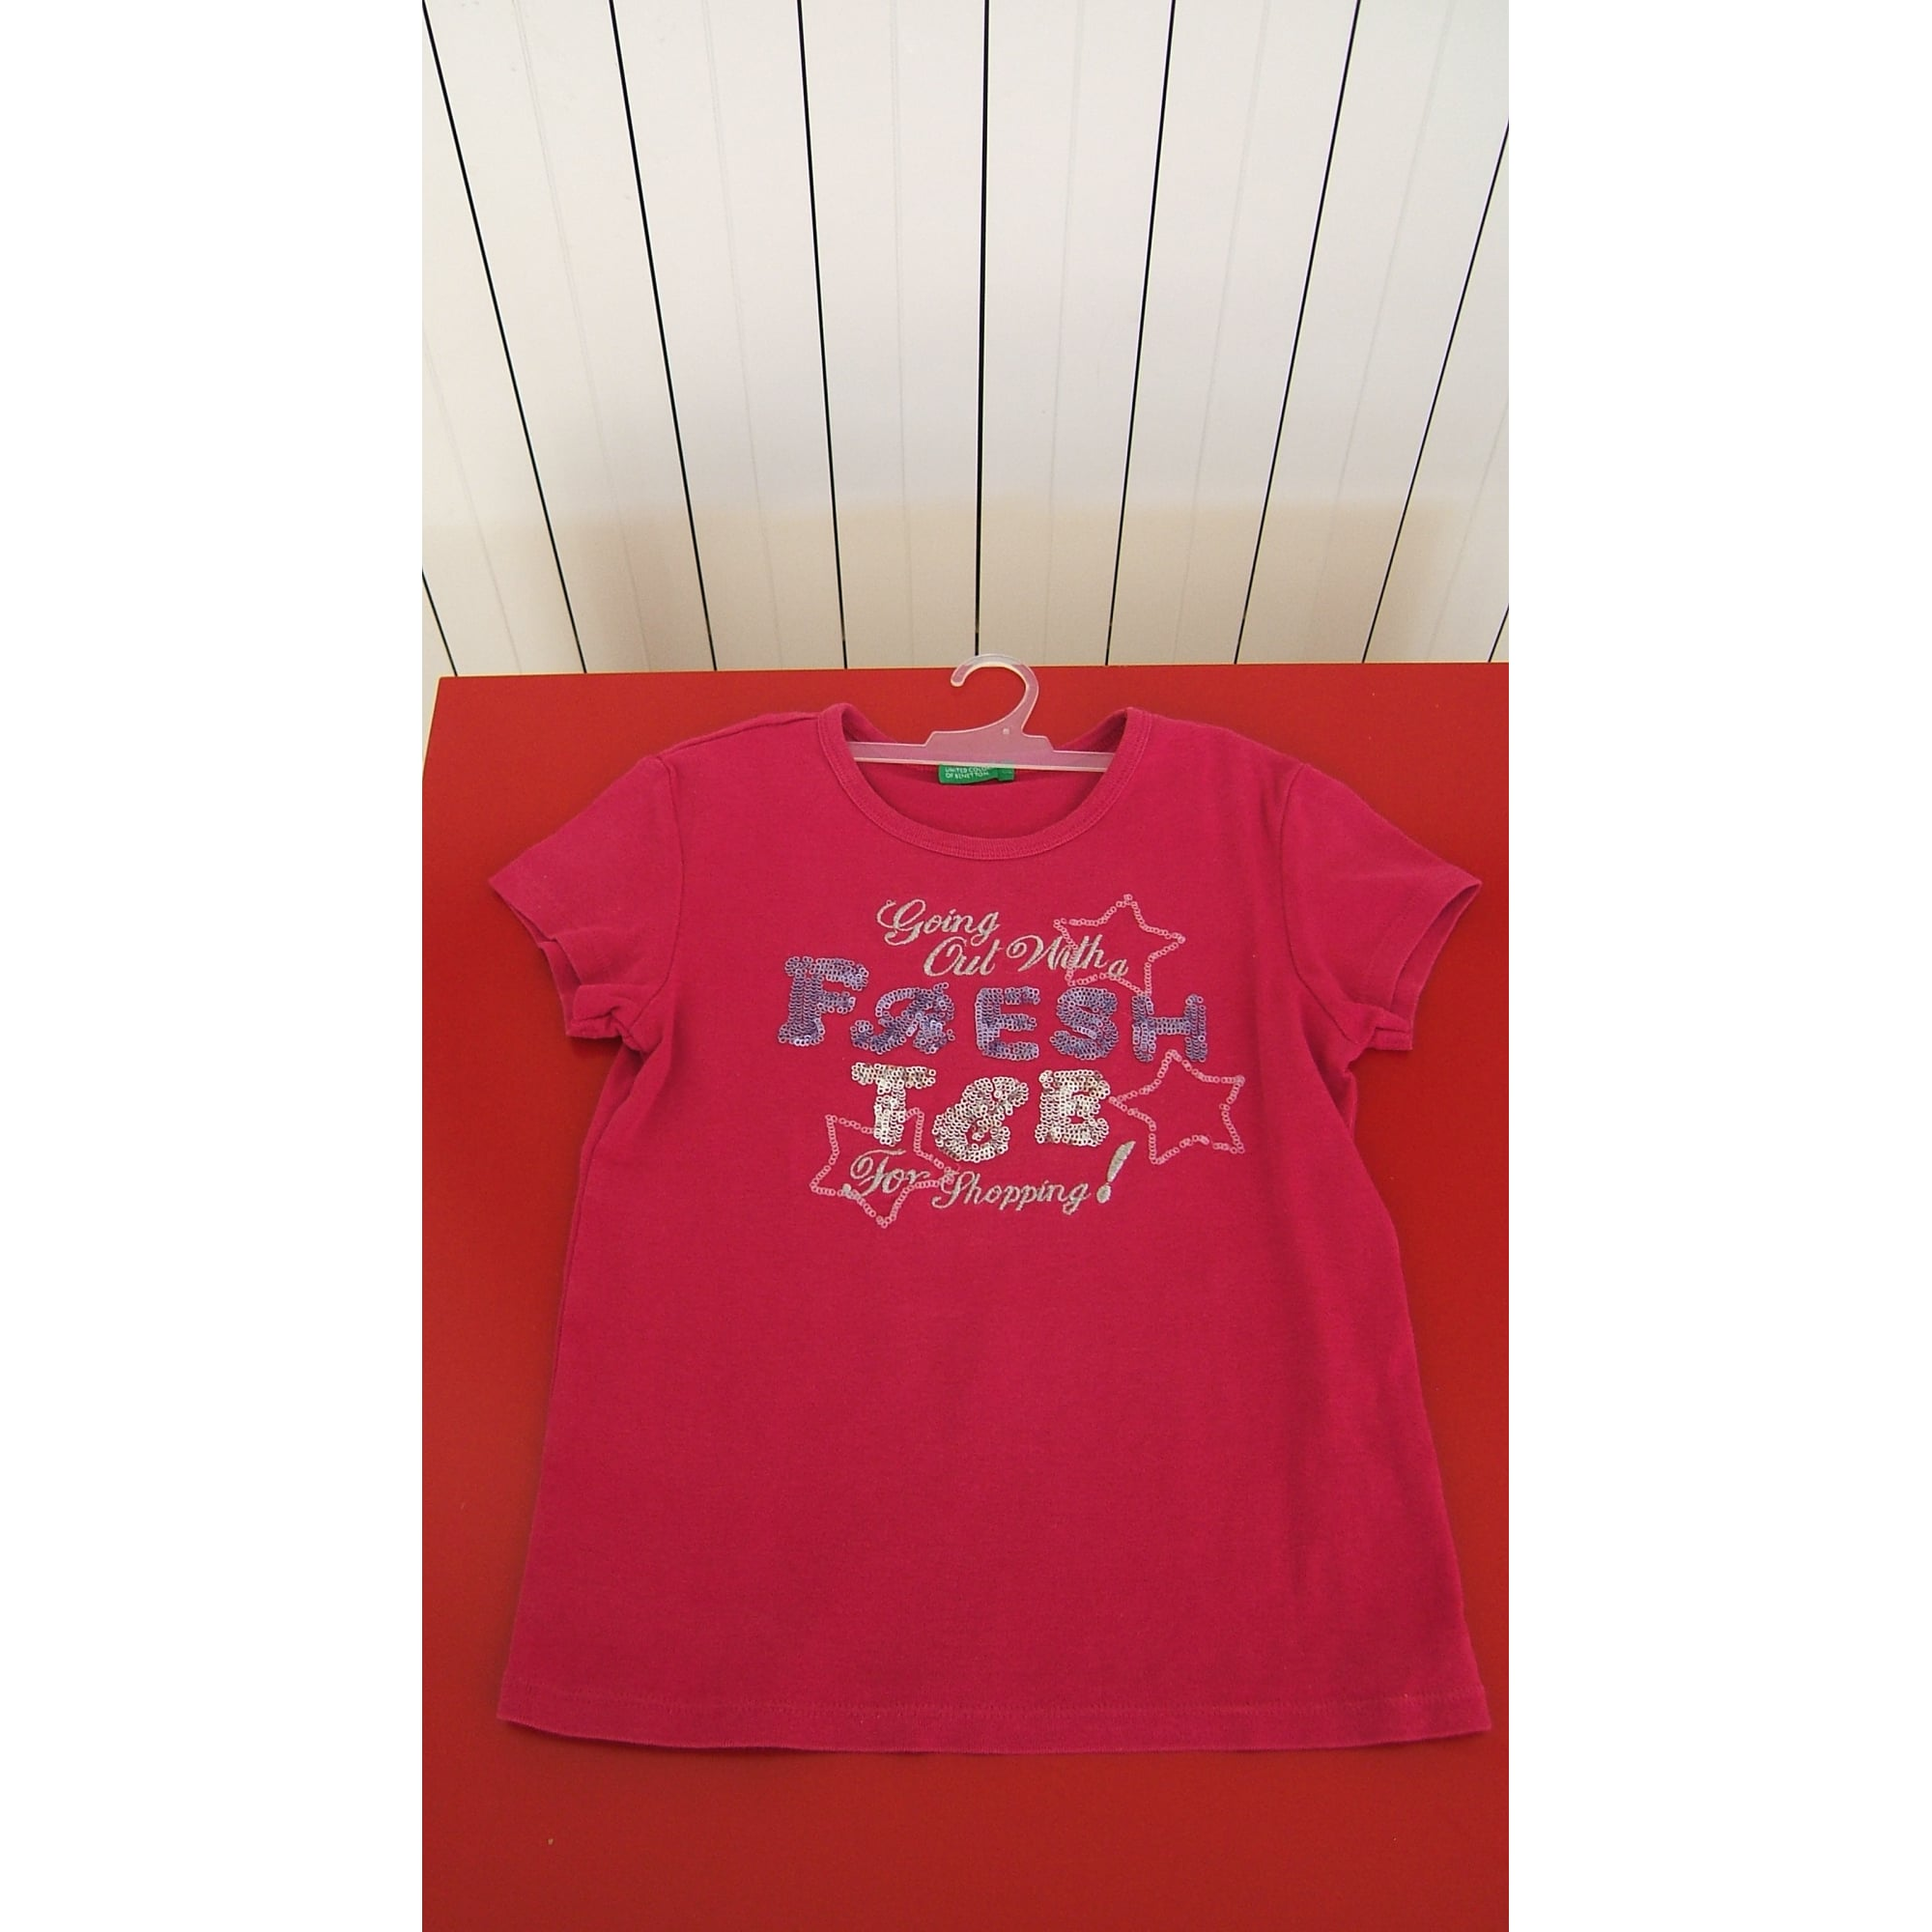 Top, Tee-shirt UNITED COLORS OF BENETTON Rose, fuschia, vieux rose